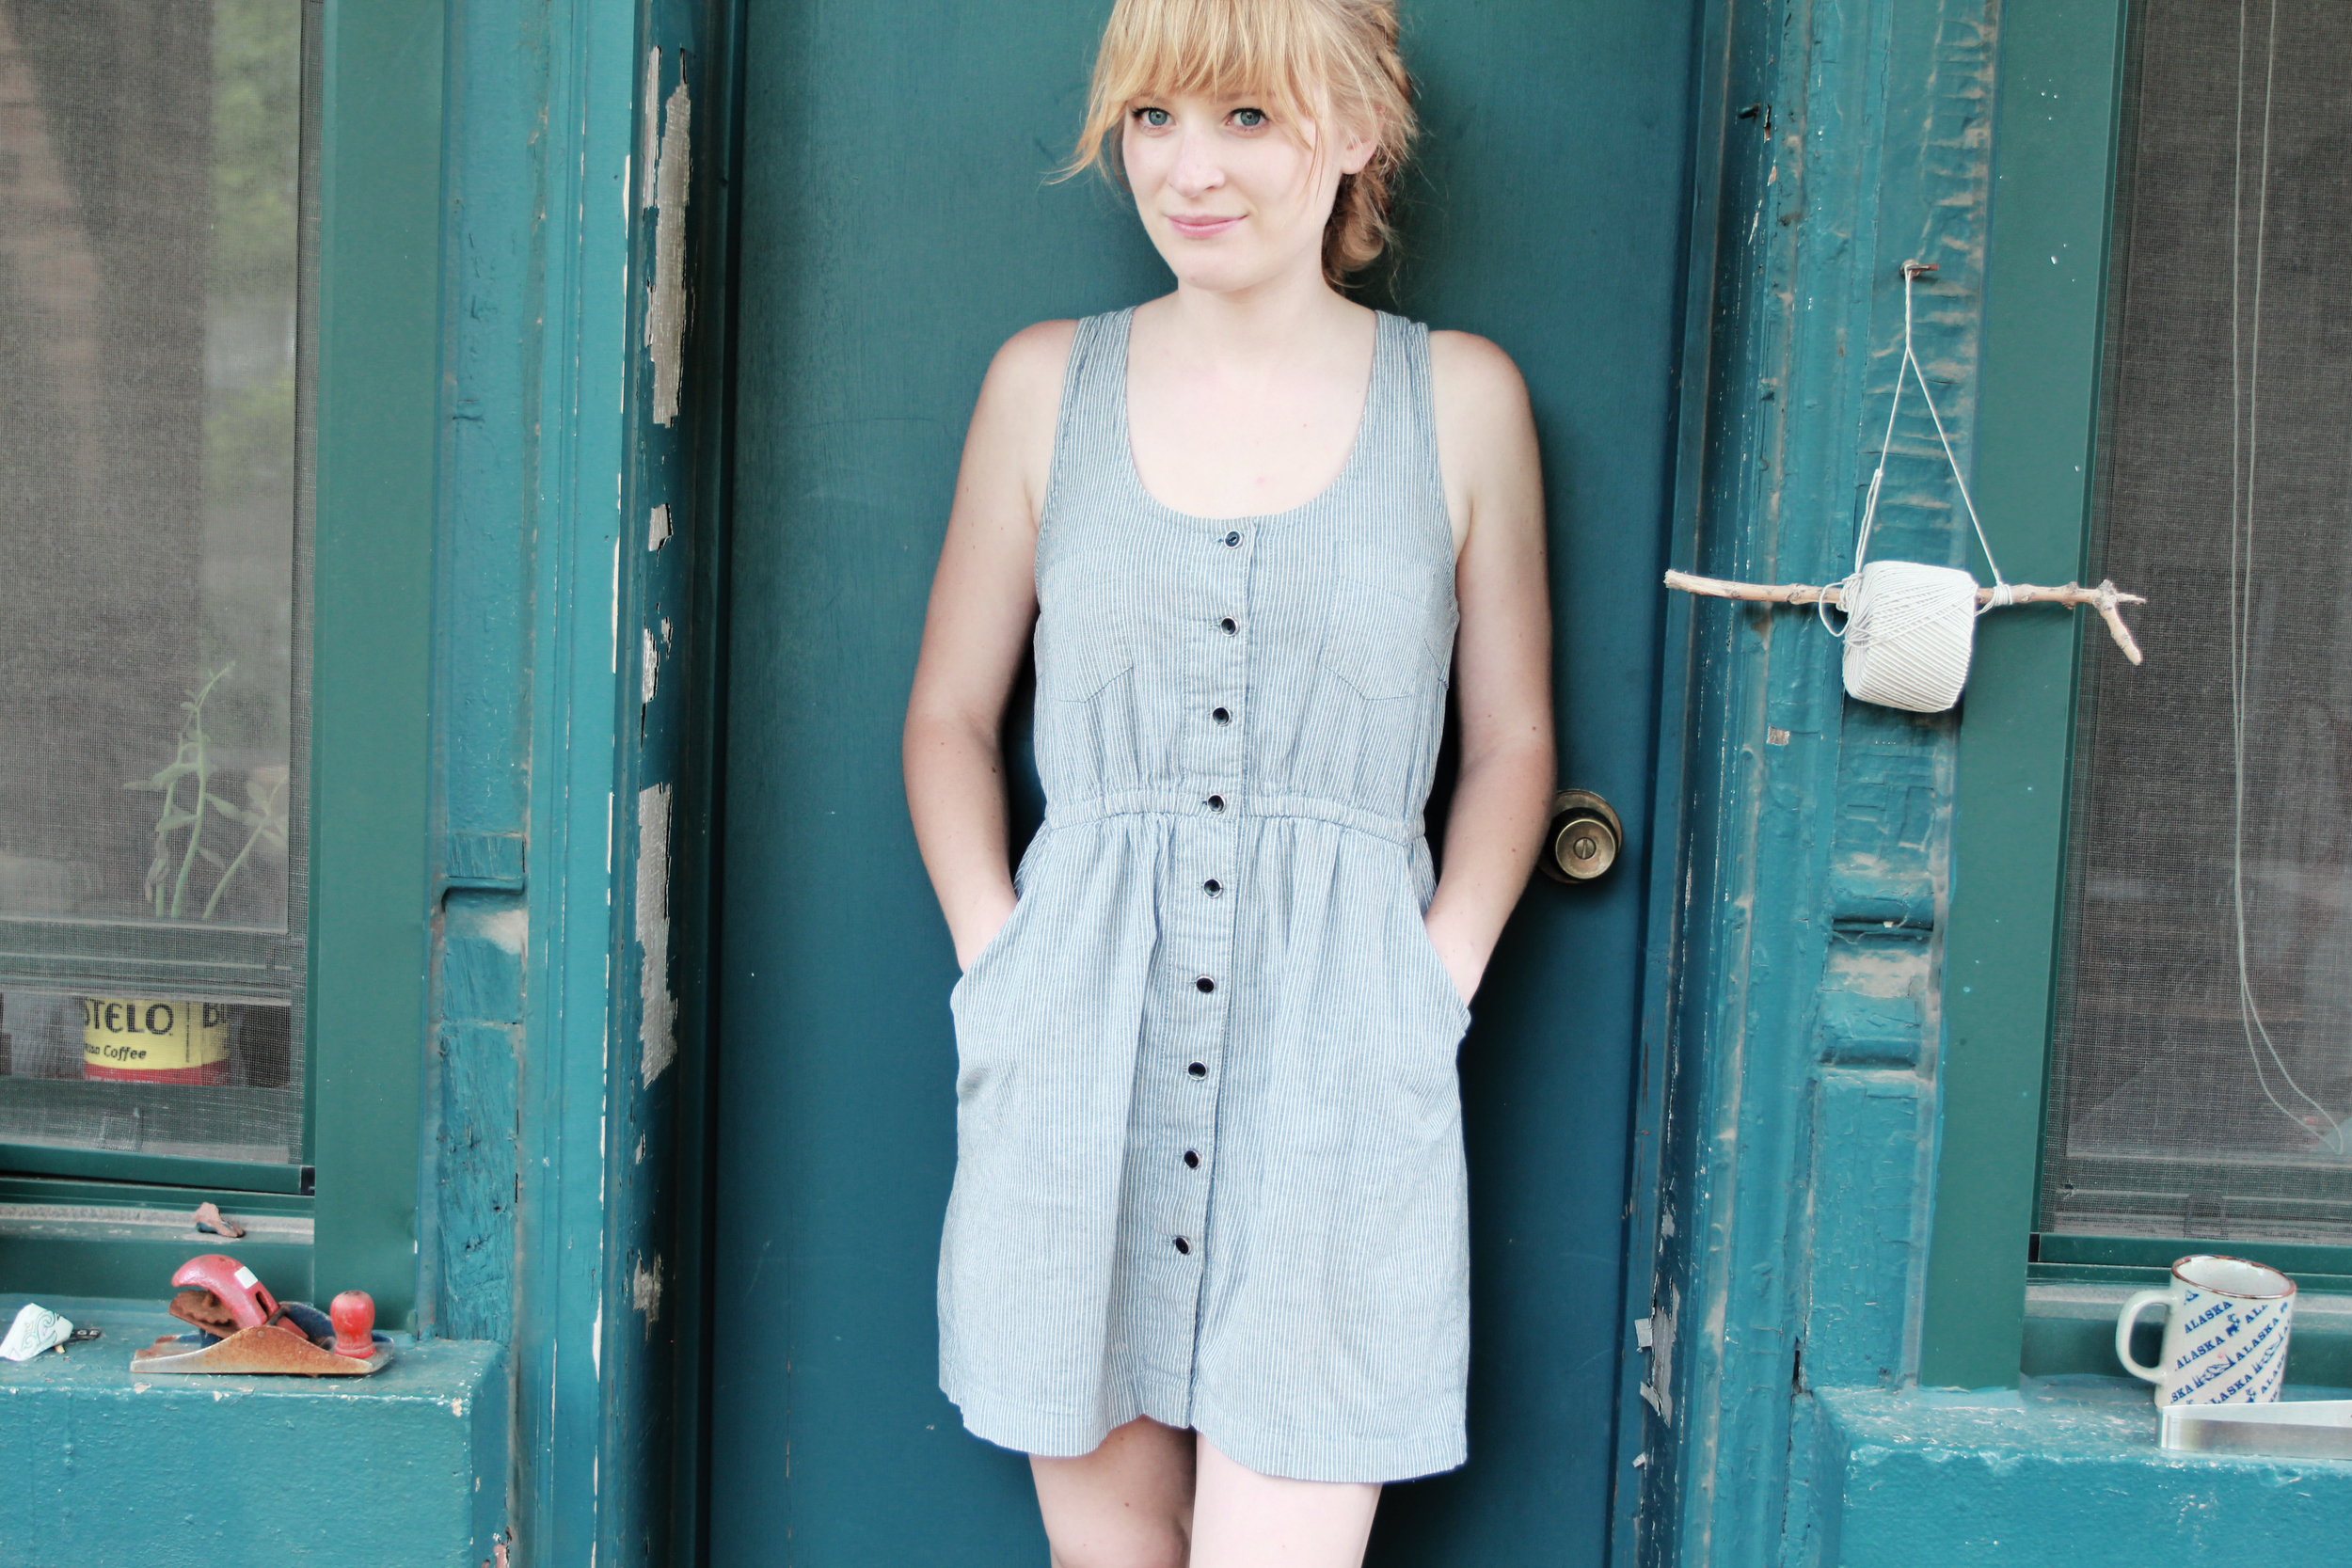 A more casual sundress (Salvation Army) that I can wear with both my converses and the platform sandals.